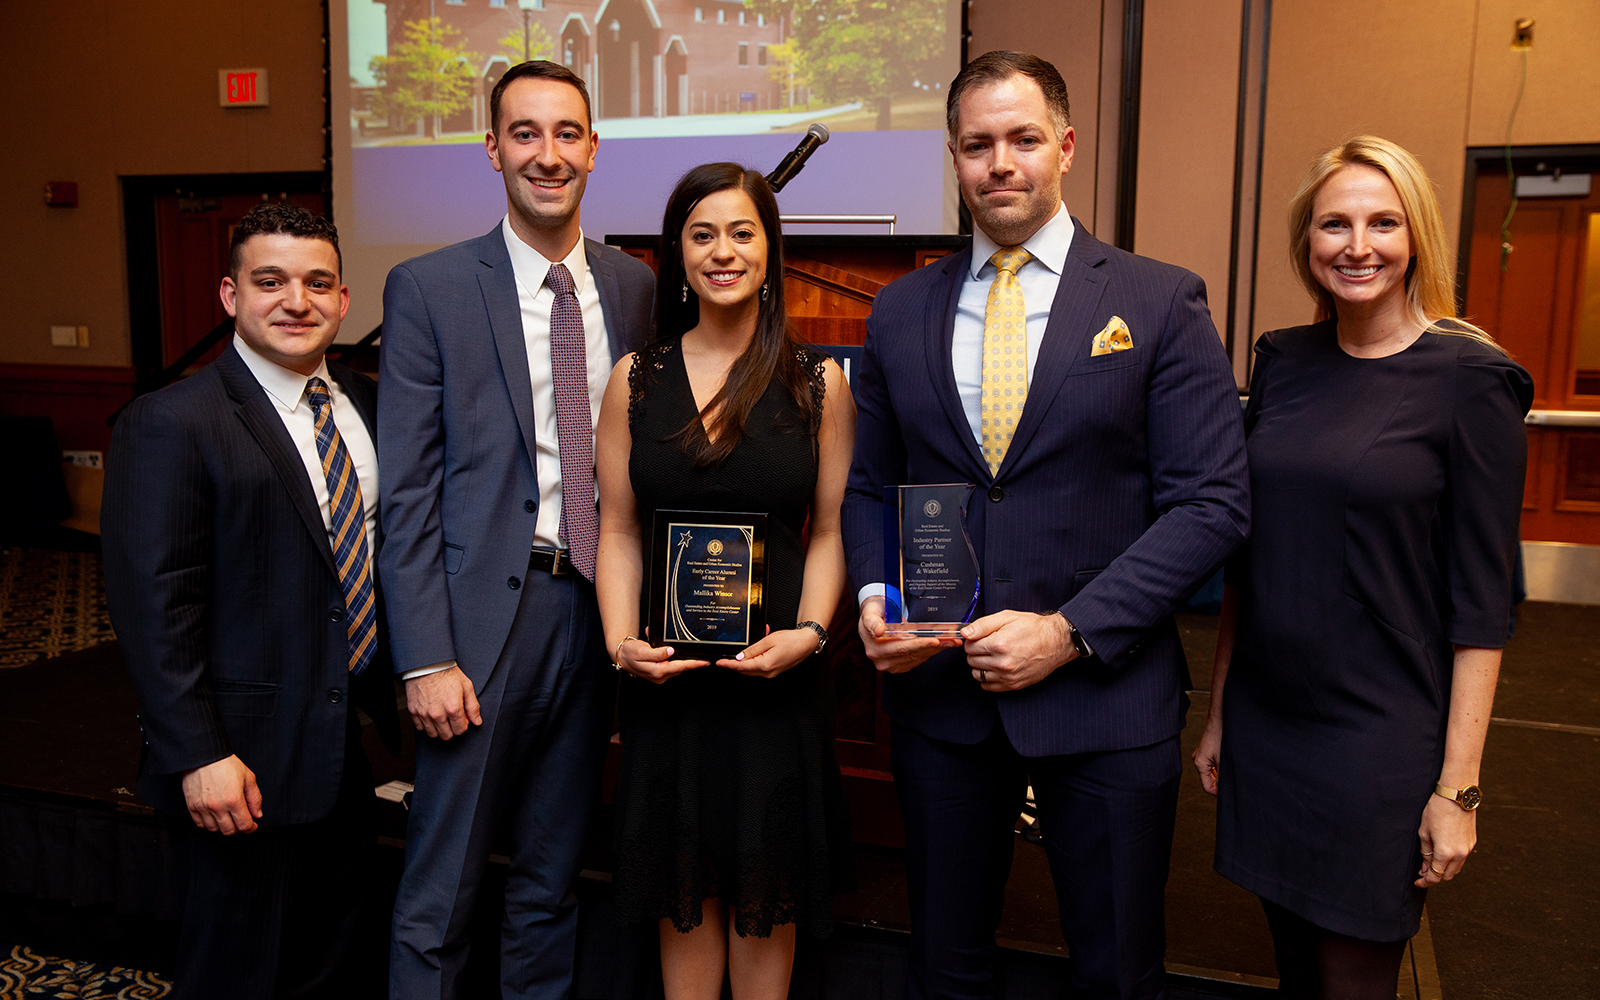 Mallika Winsor, Senior Associate at Cushman & Wakefield, is surrounded by colleagues during the Real Estate Center's annual banquet. (Zack Wussow)